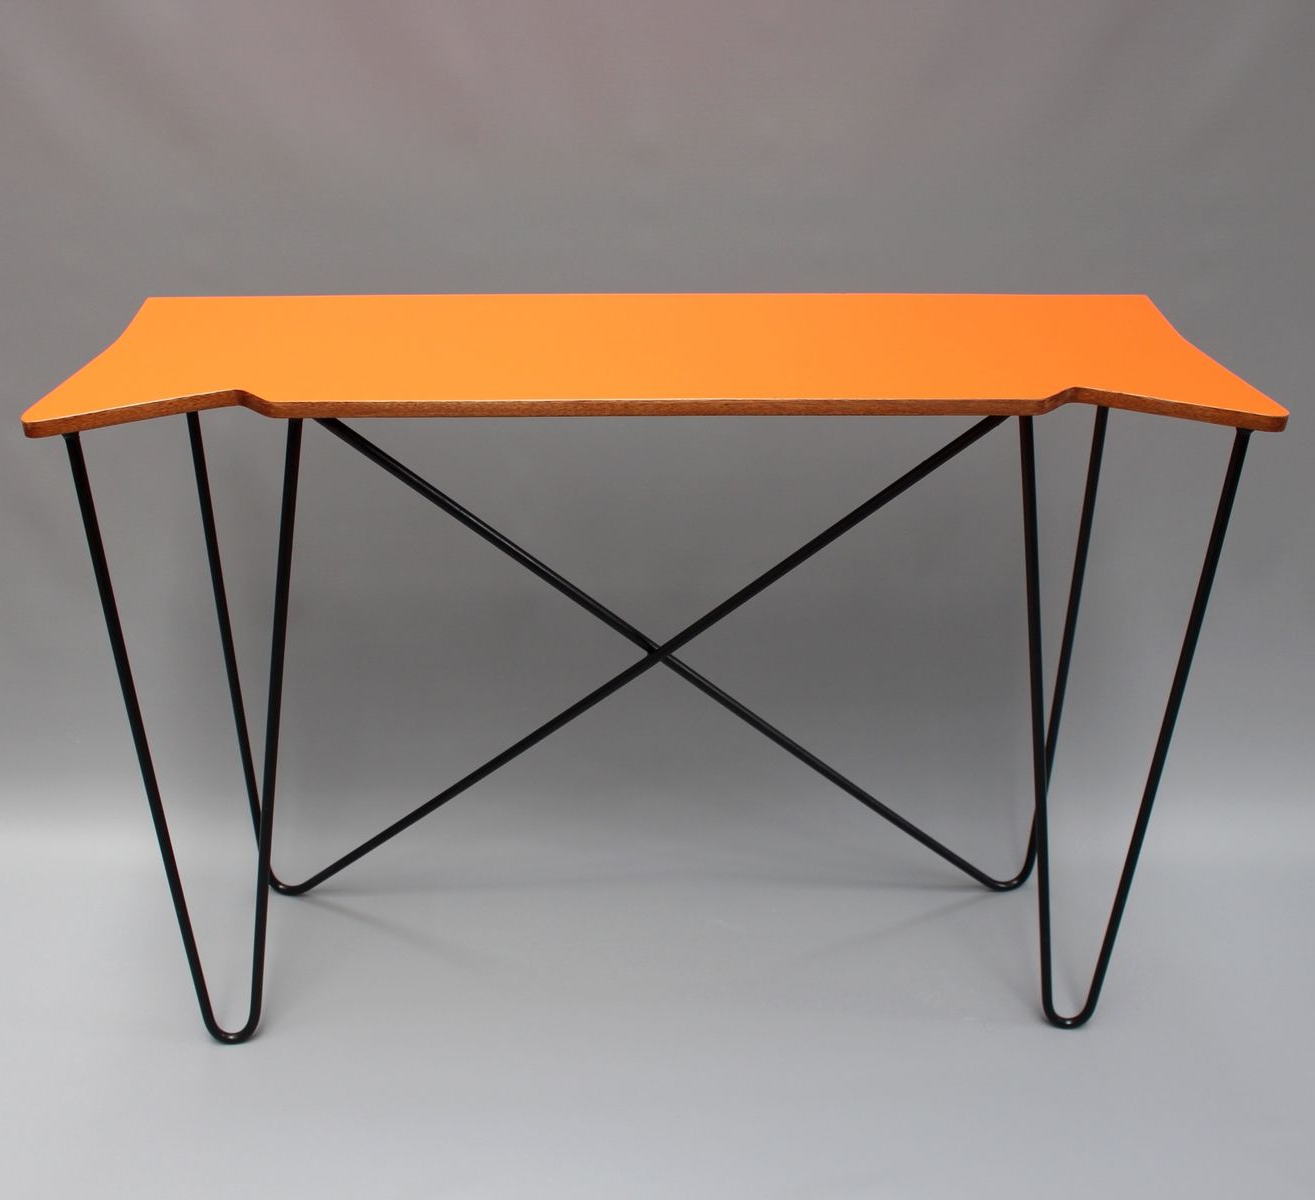 Vintage Orange Console Table 1980S For Sale At Pamono Bone Inlay Regarding Orange Inlay Console Tables (Gallery 4 of 20)